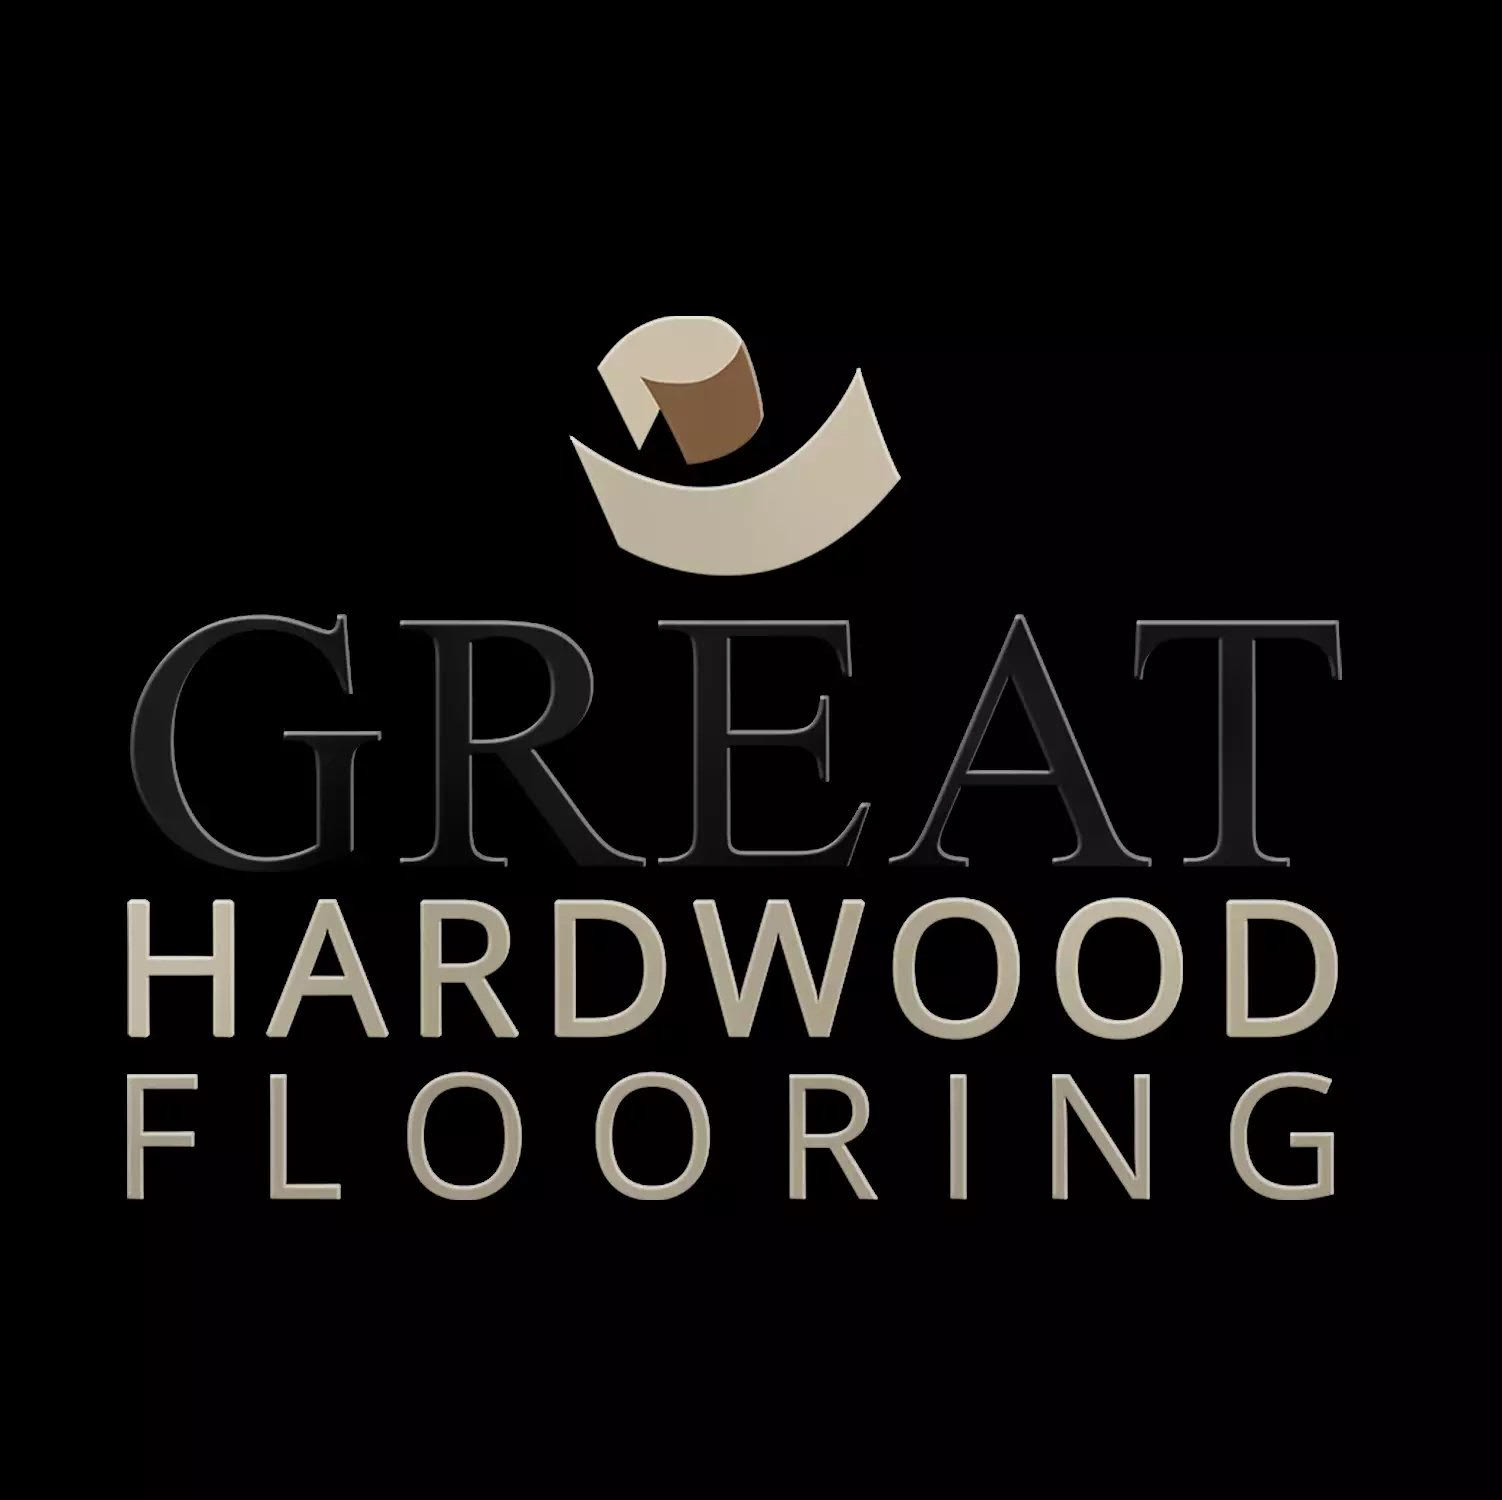 Great Hardwood Flooring Inc